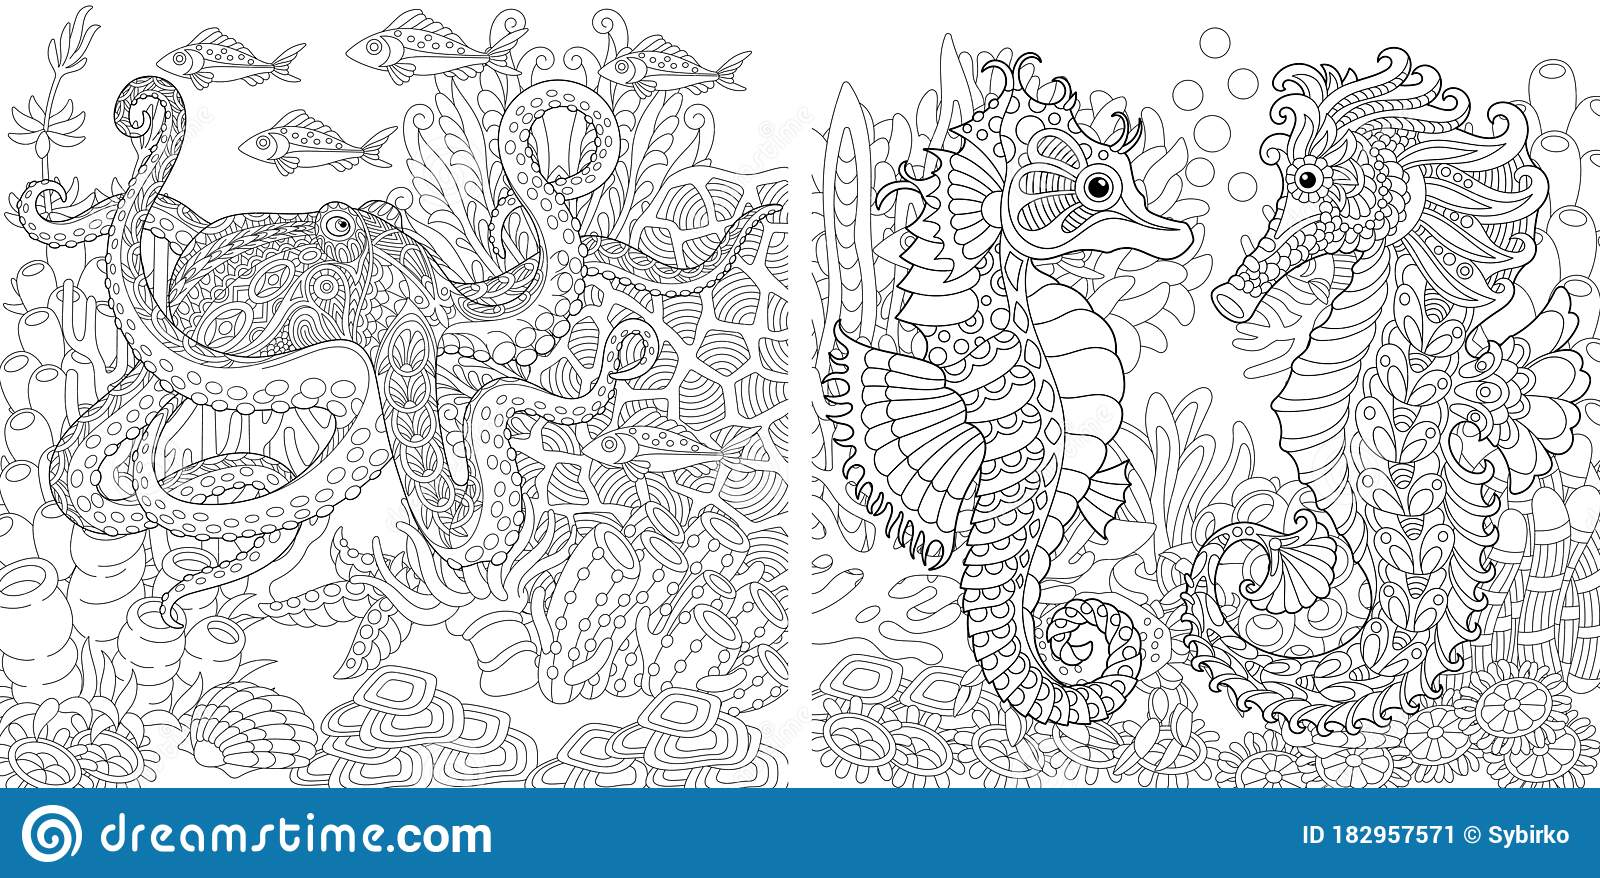 Coloring Pages With Town Landscapes Stock Vector - Illustration of ... | 878x1600